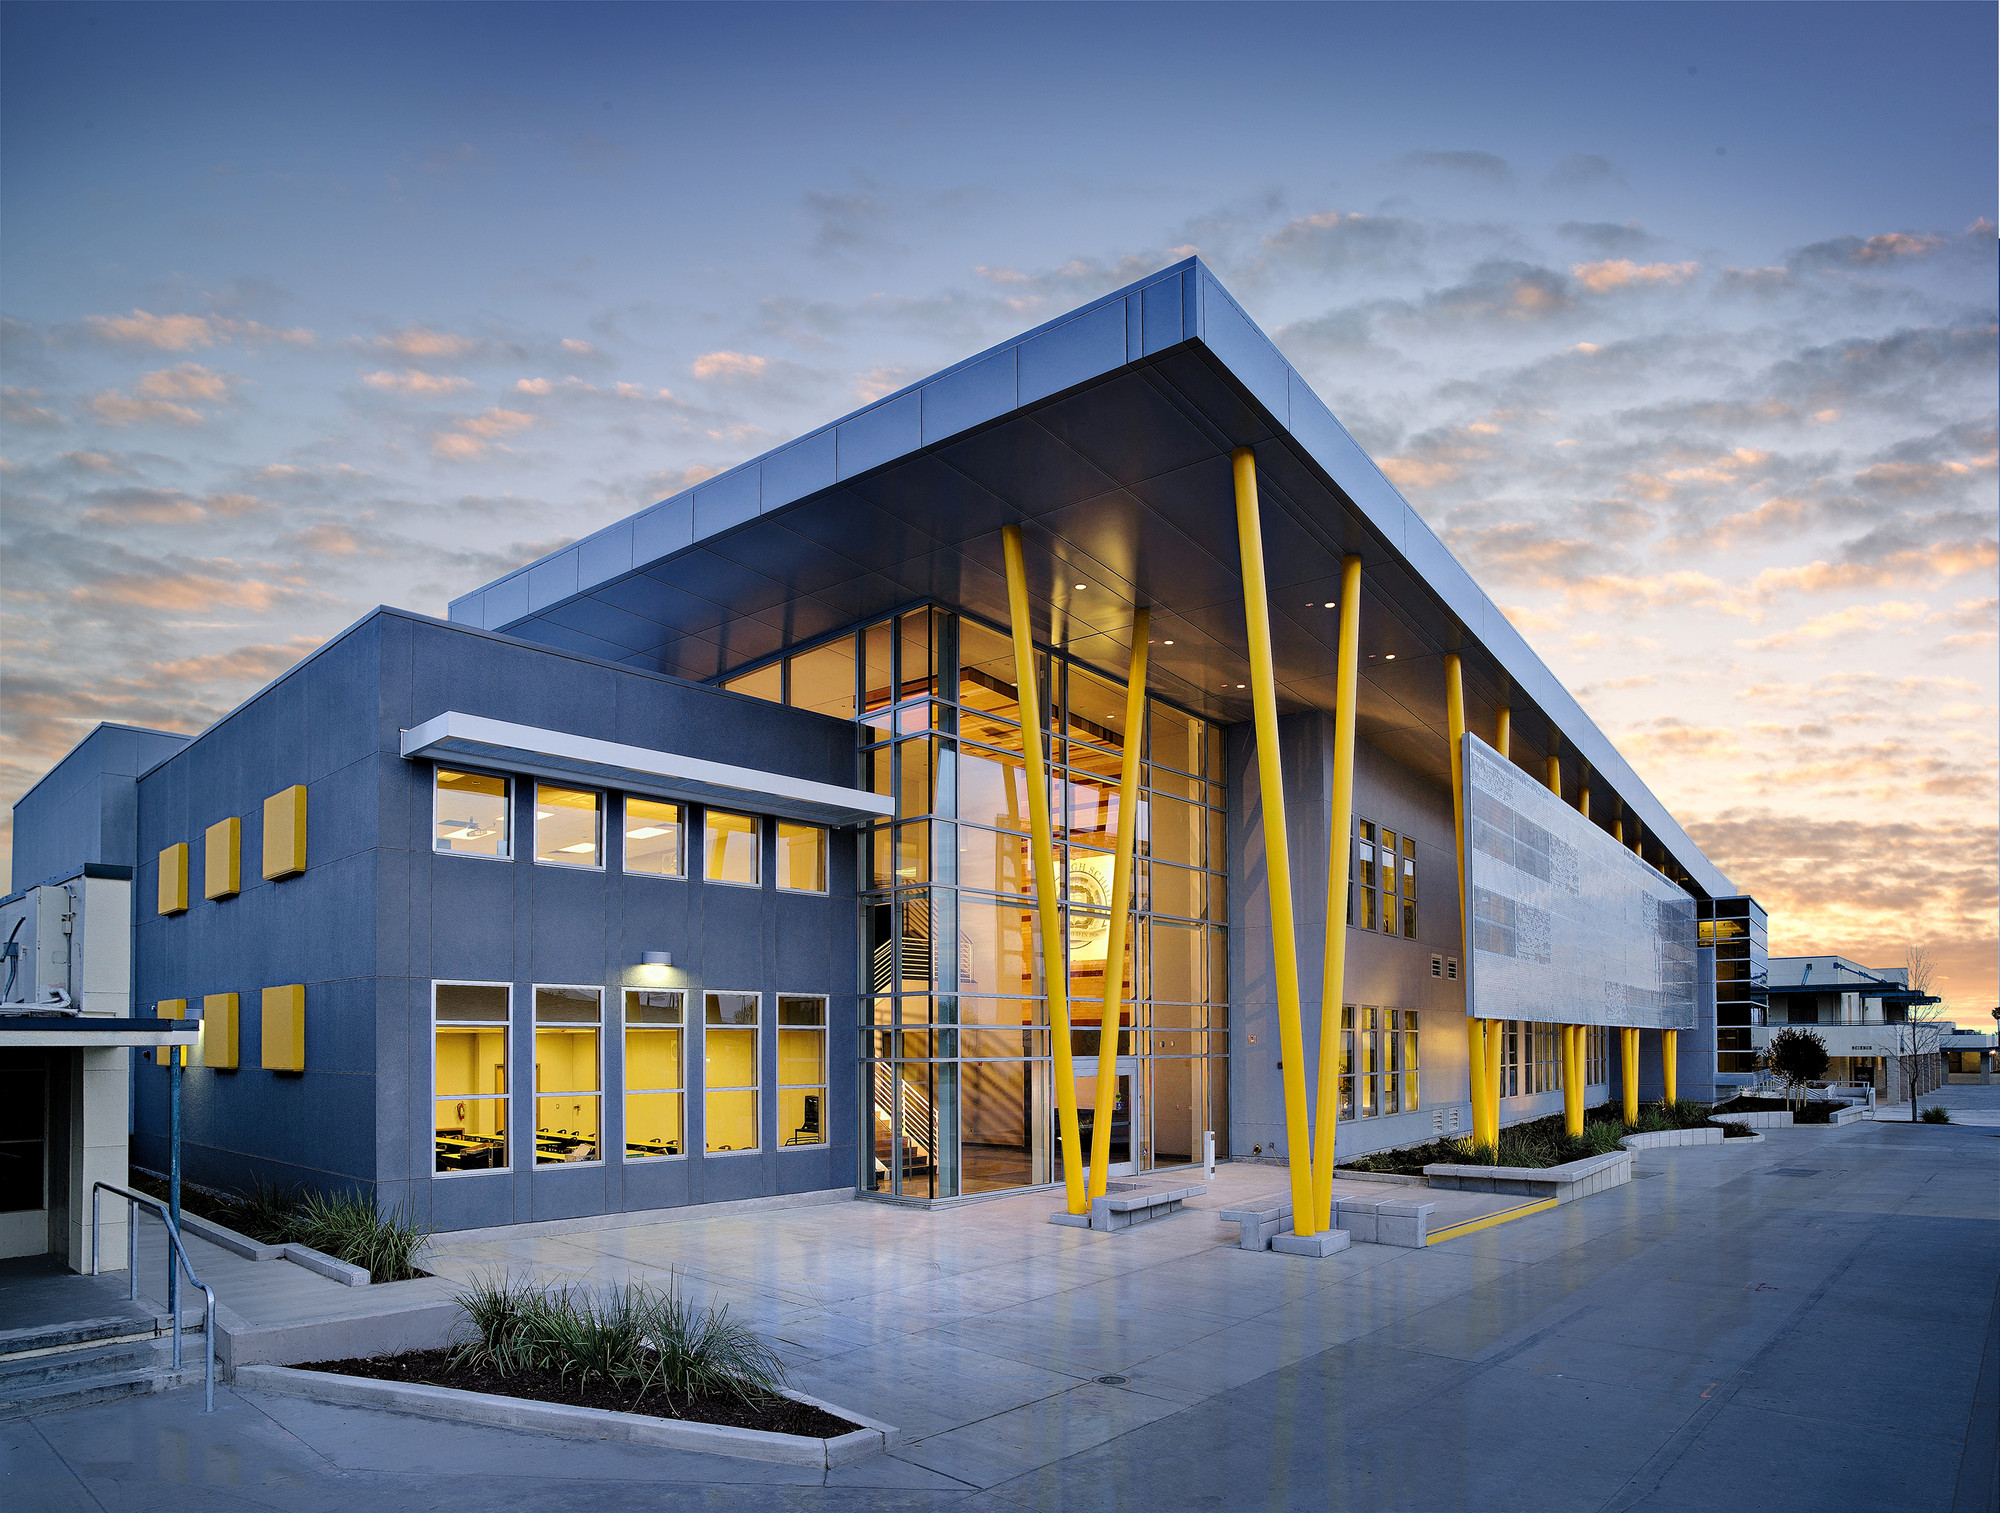 Edison high school academic building darden architects for New construction design ideas